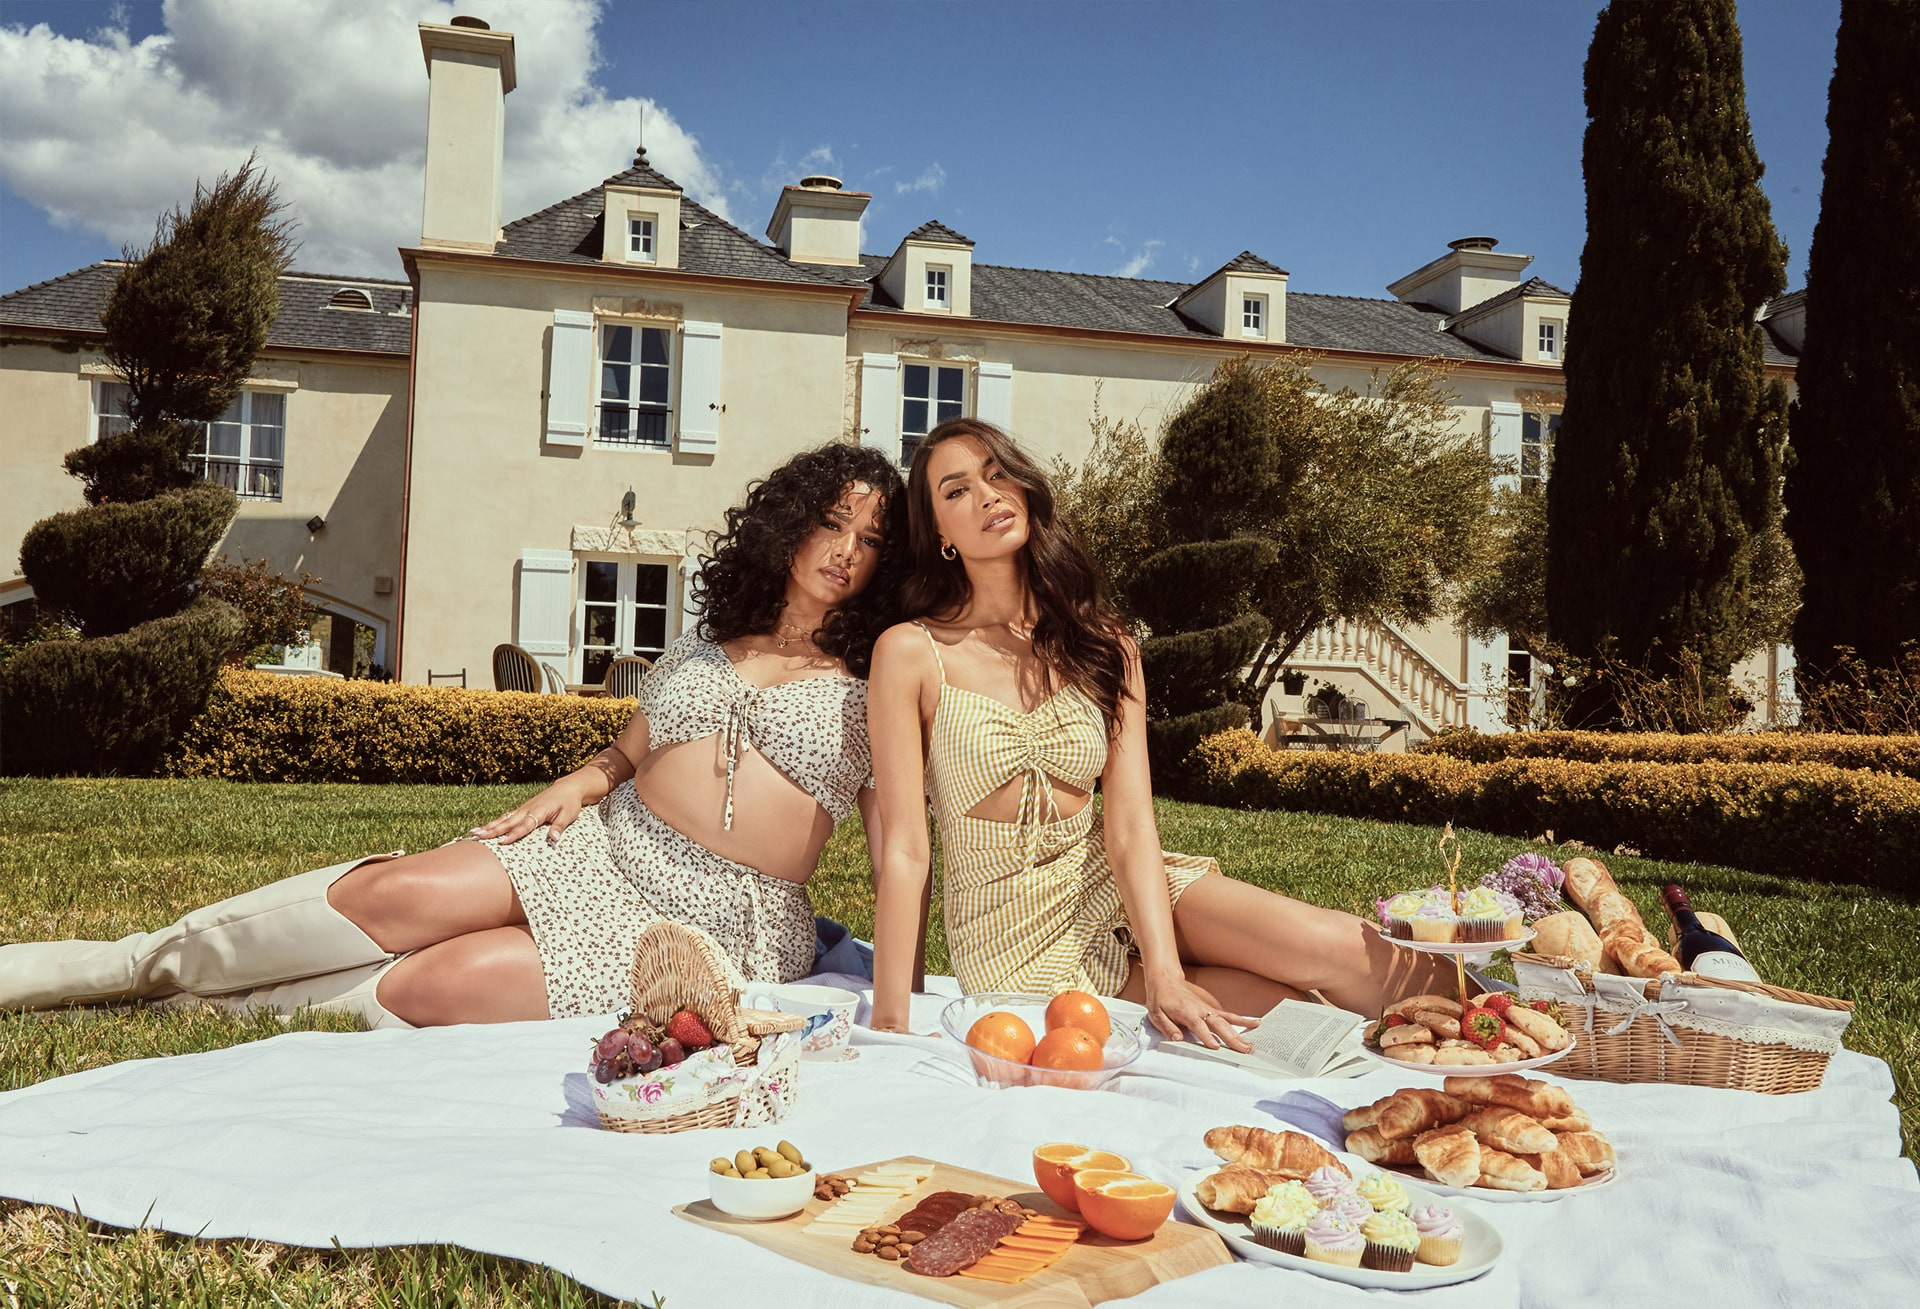 Garden Party Spring Fling Lookbook Image Desktop 5